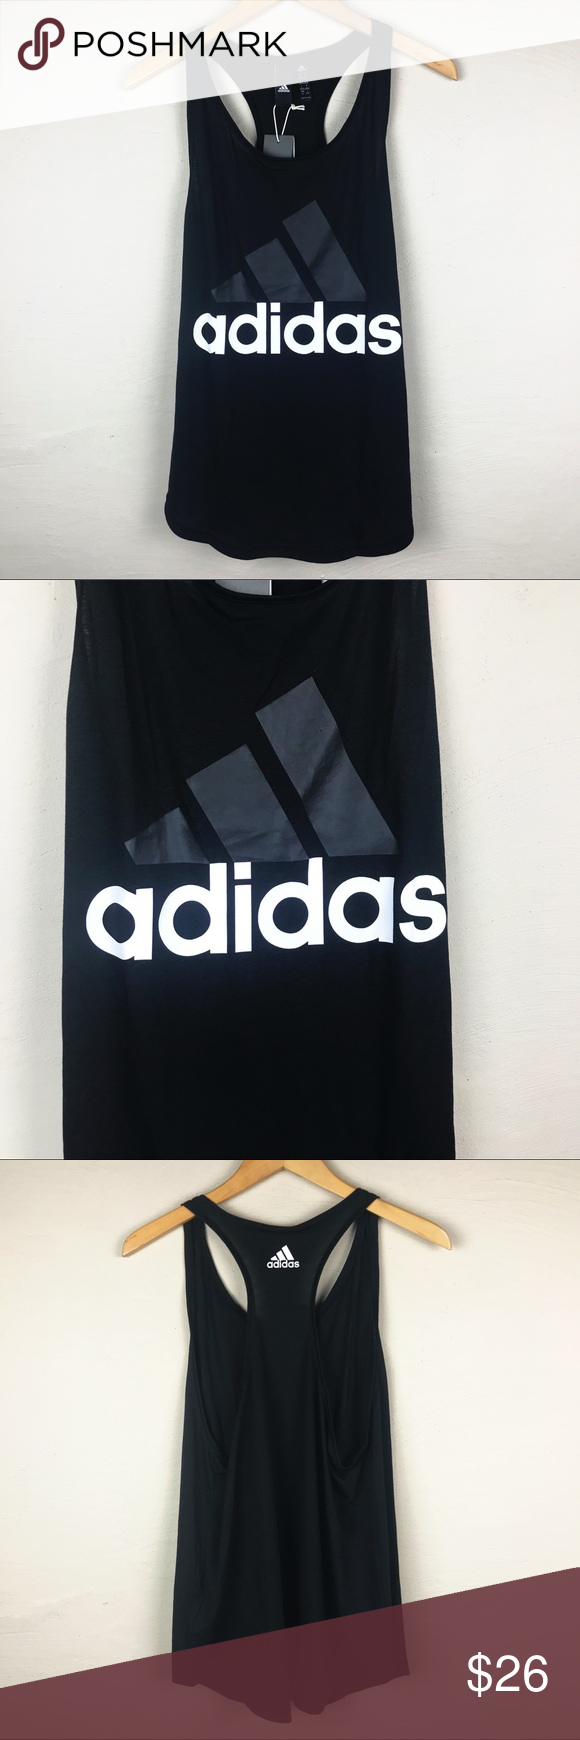 4e3cb49210c NWT ADIDAS Black racerback tank Large New with tags